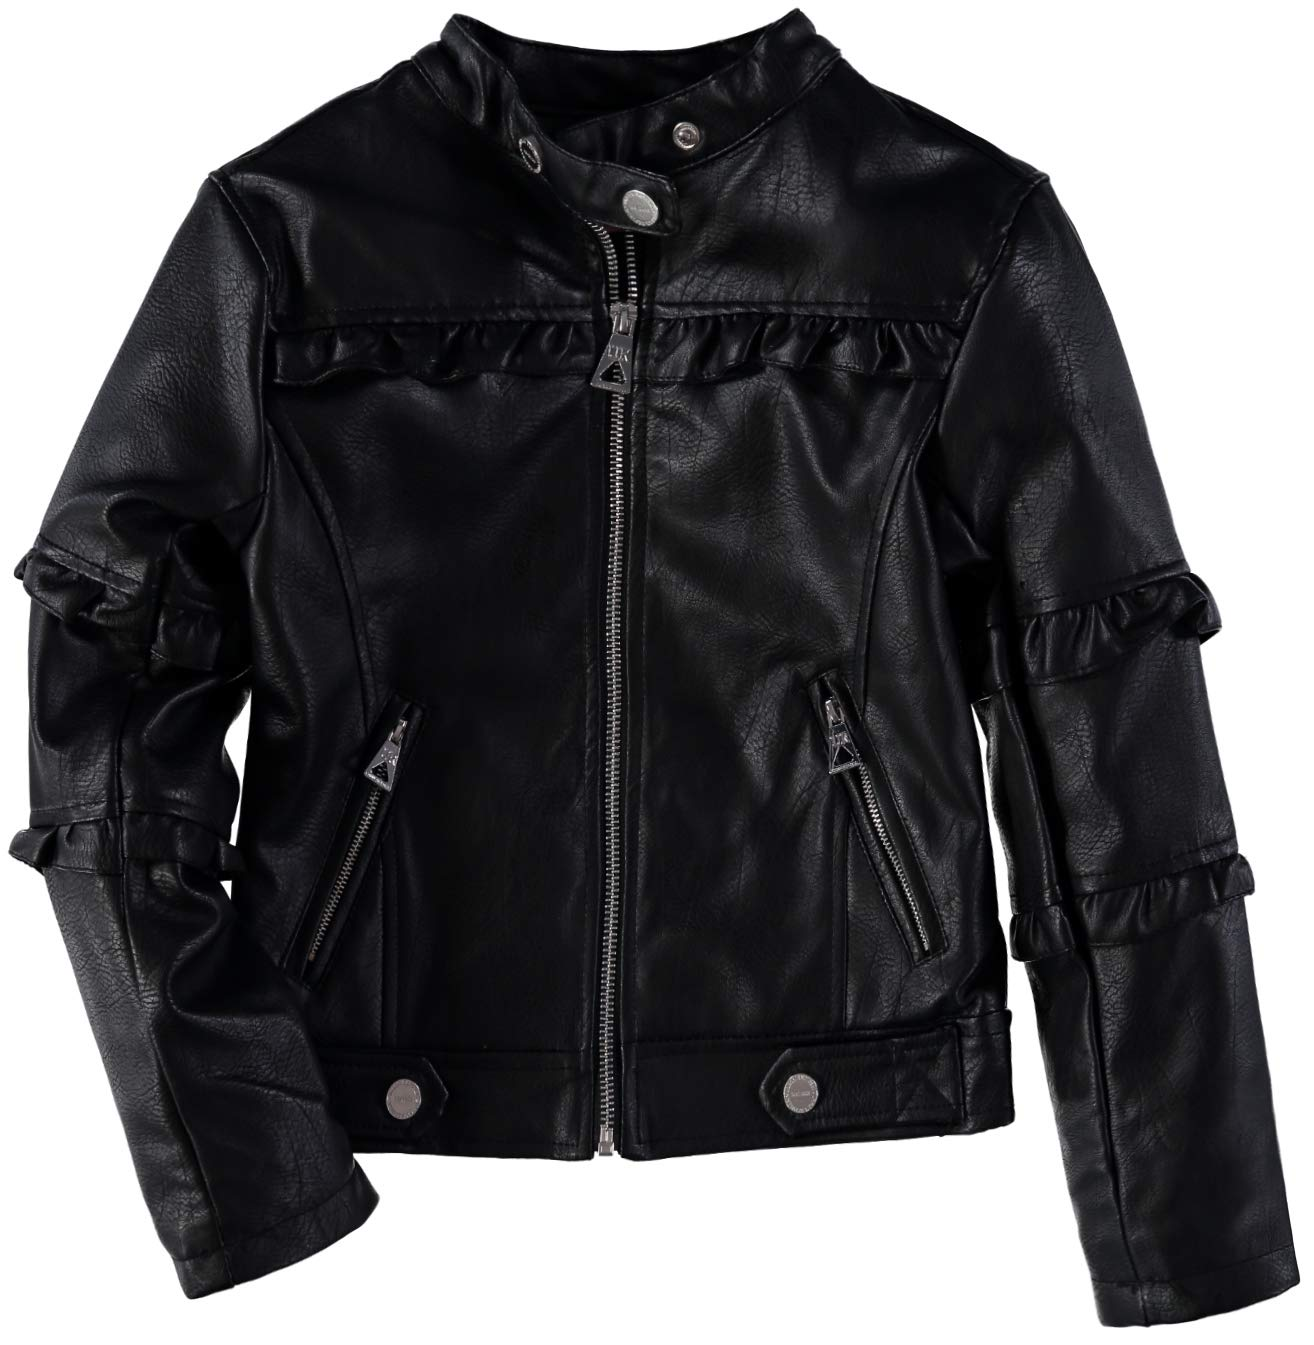 Urban Republic Girls' Faux Leather Ruffle Moto Jacket (Black, 7/8) by Urban Republic (Image #1)